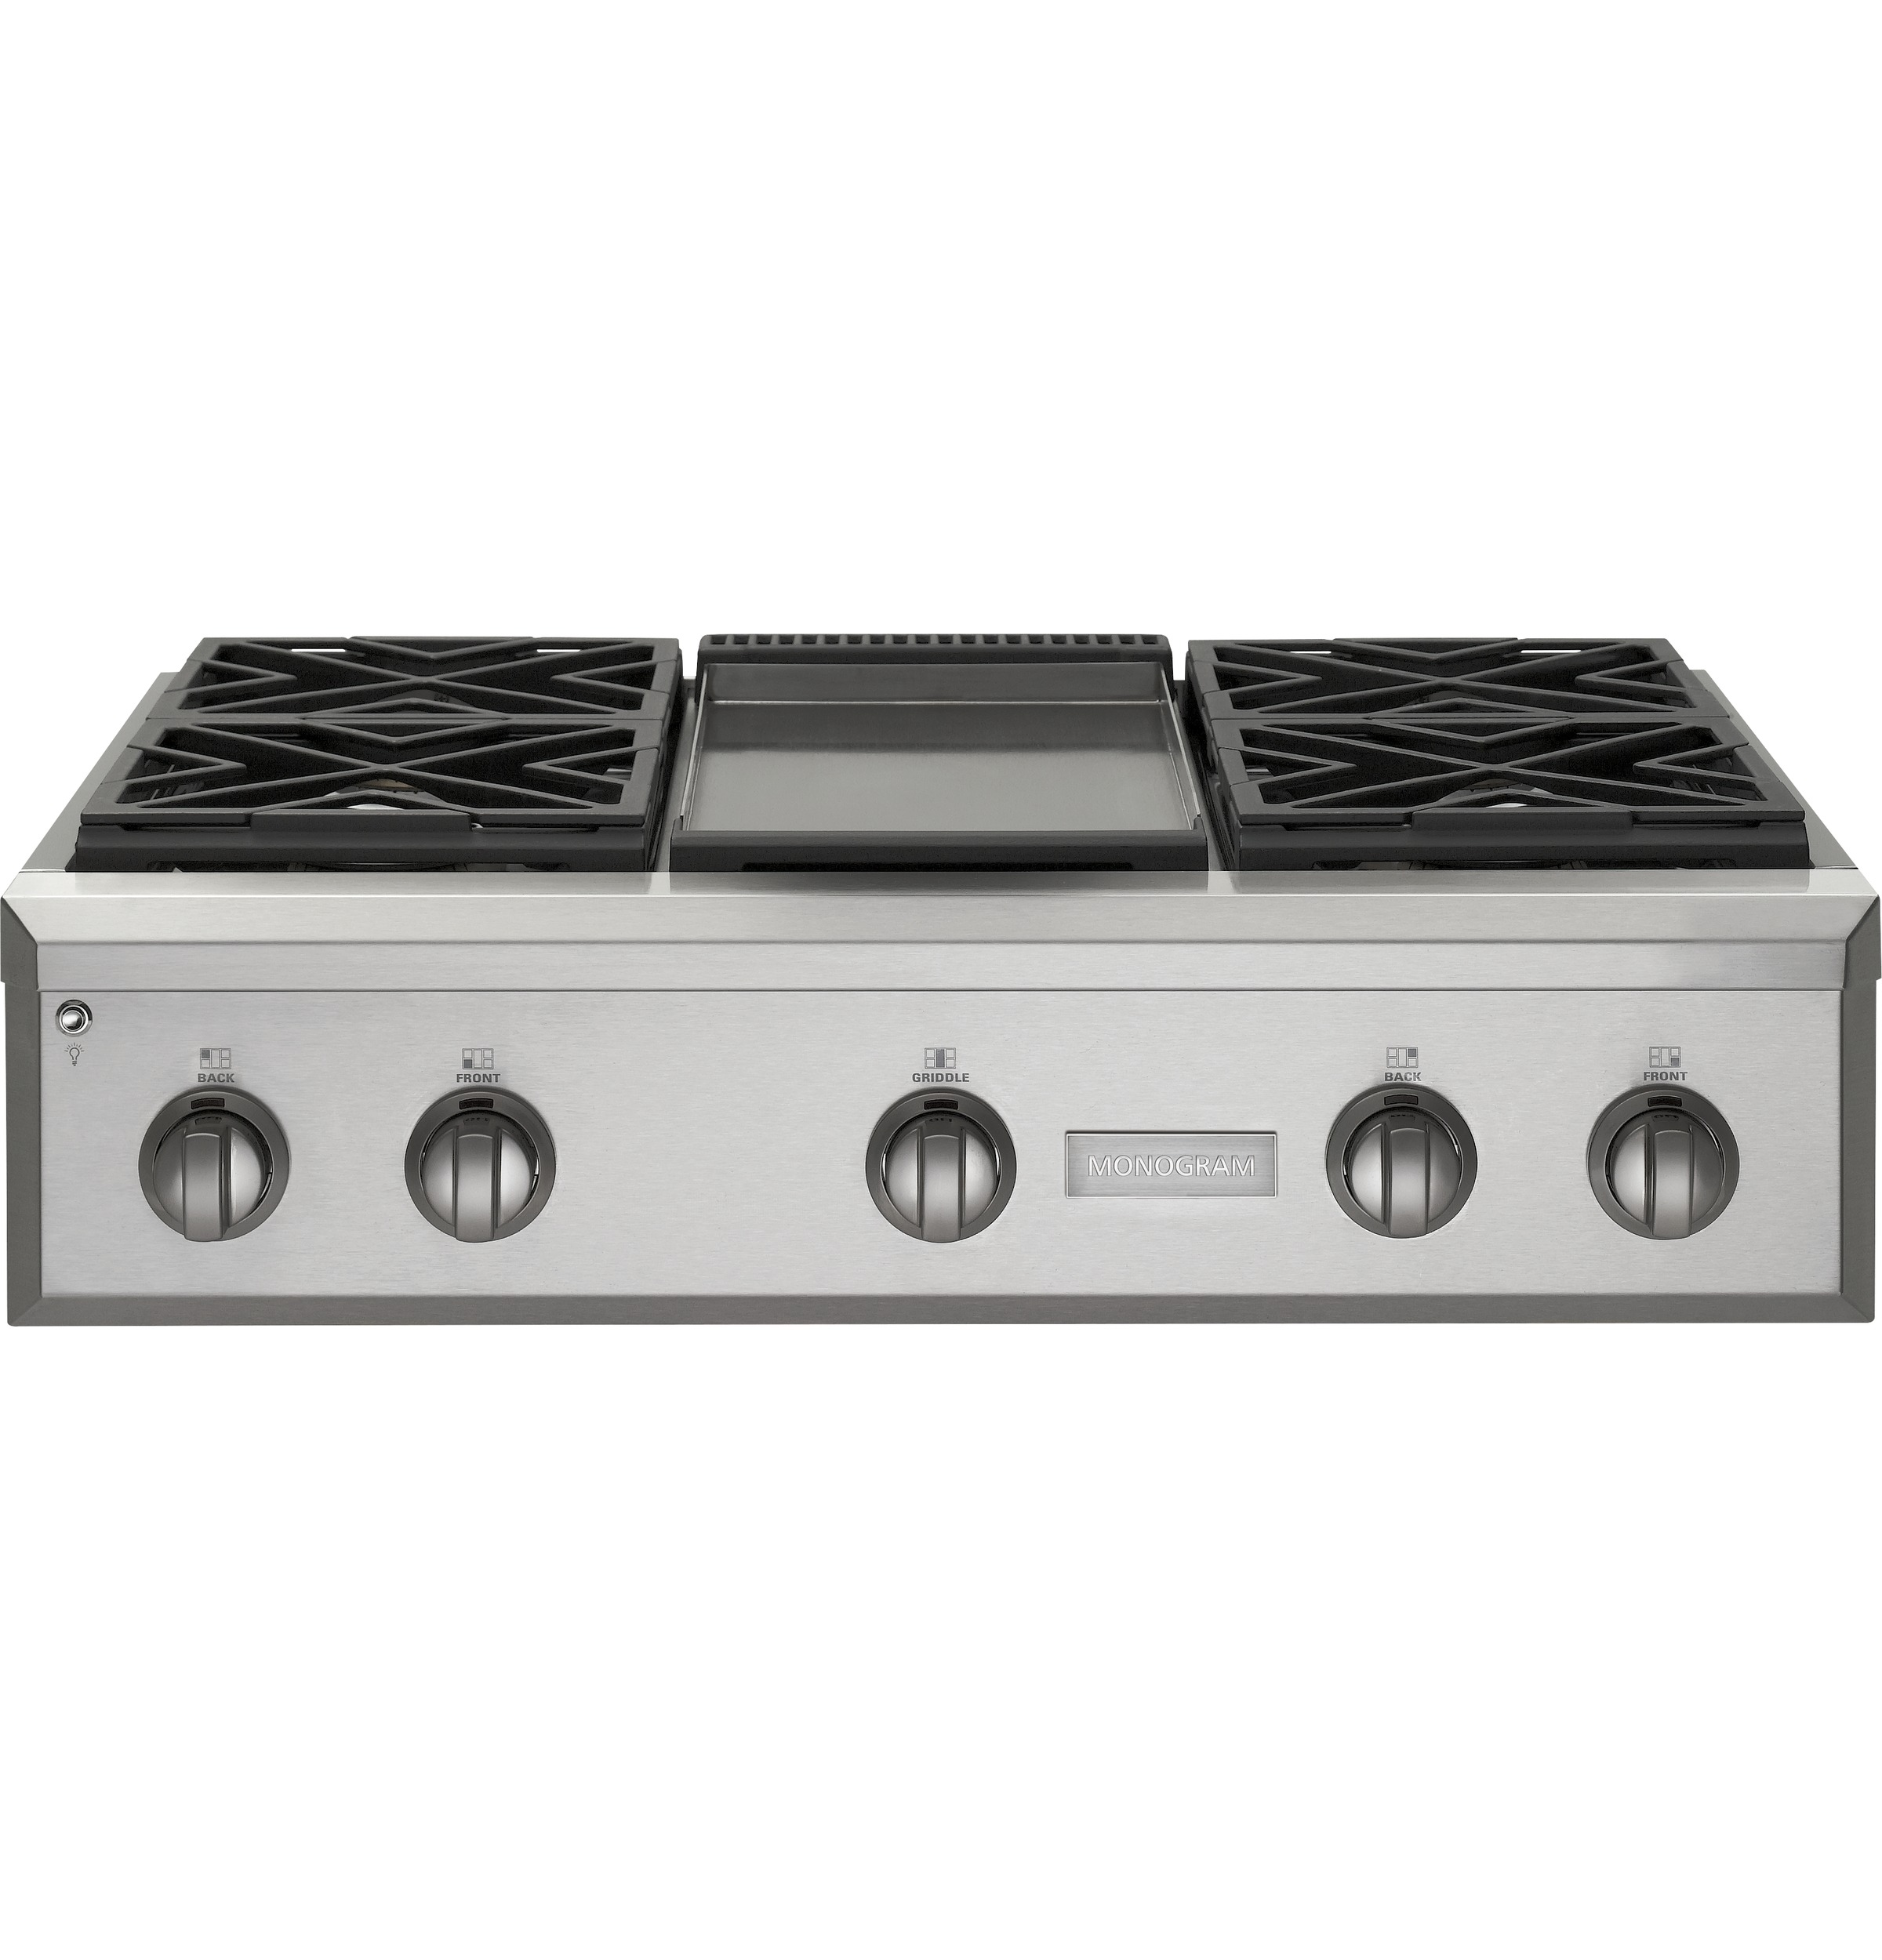 "Monogram Monogram 36"" Professional Gas Rangetop with 4 Burners and Griddle (Natural Gas)"